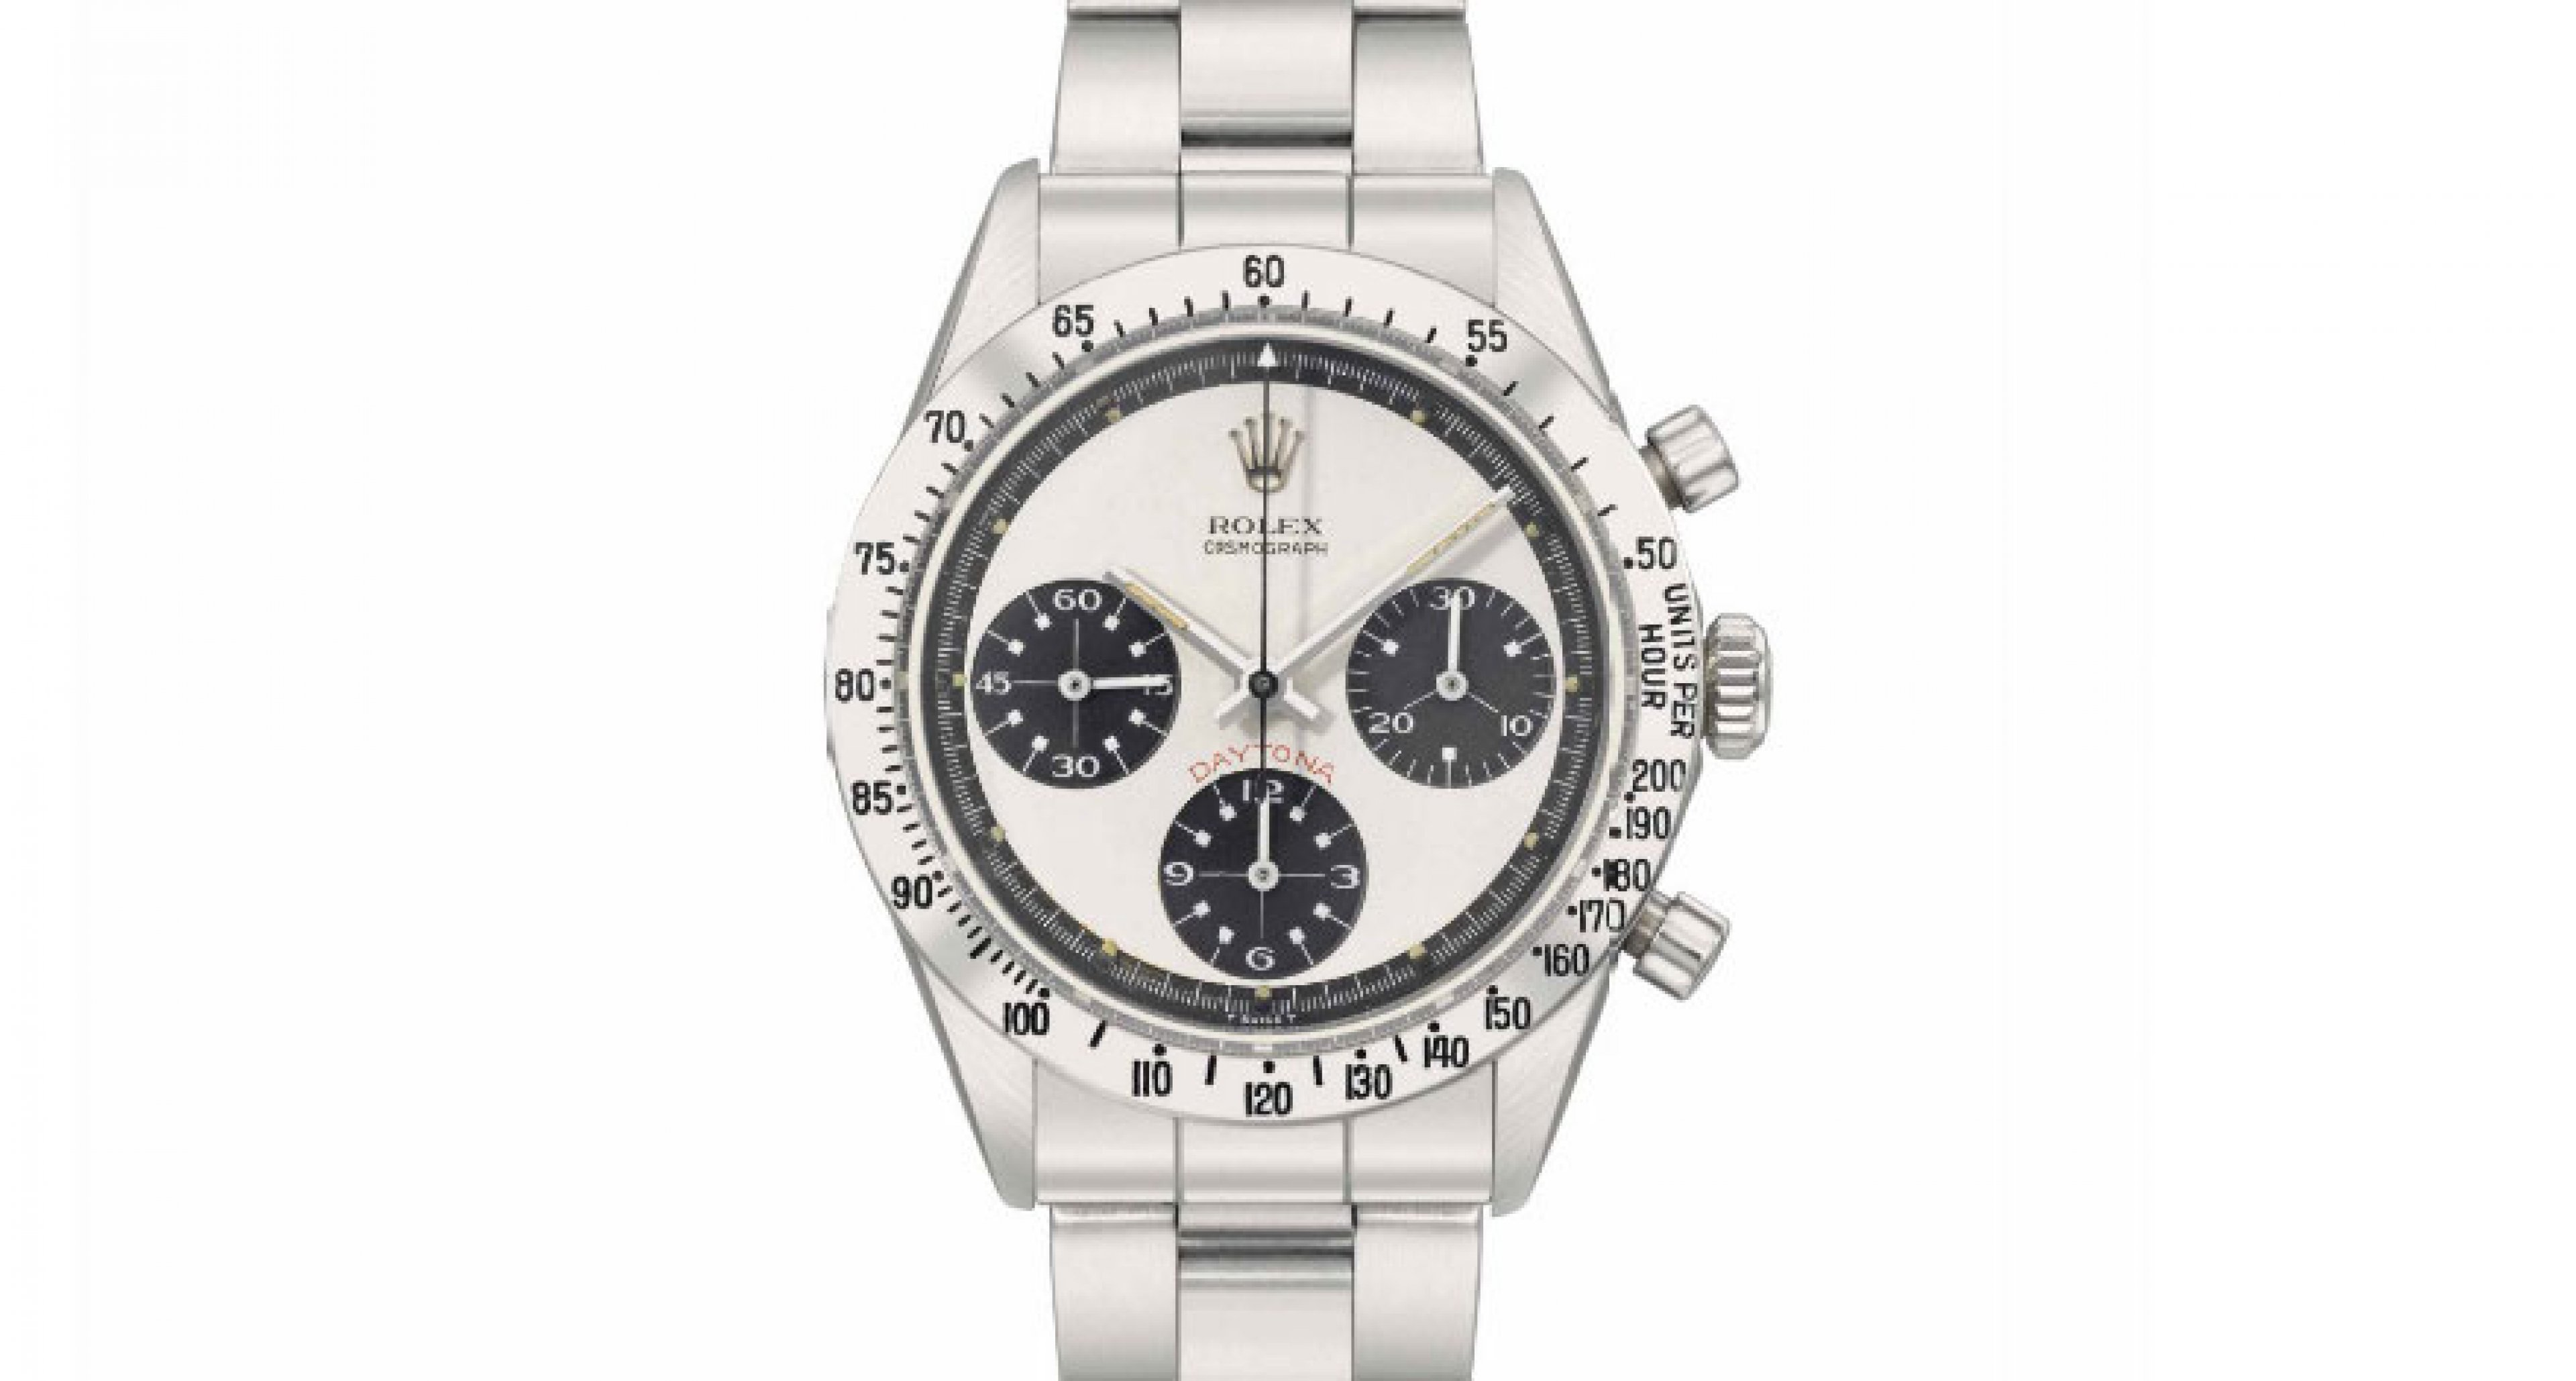 Custom made for the Peruvian air force this Rolex Daytona was sold by Chrisite's for 100.000 Swiss Francs